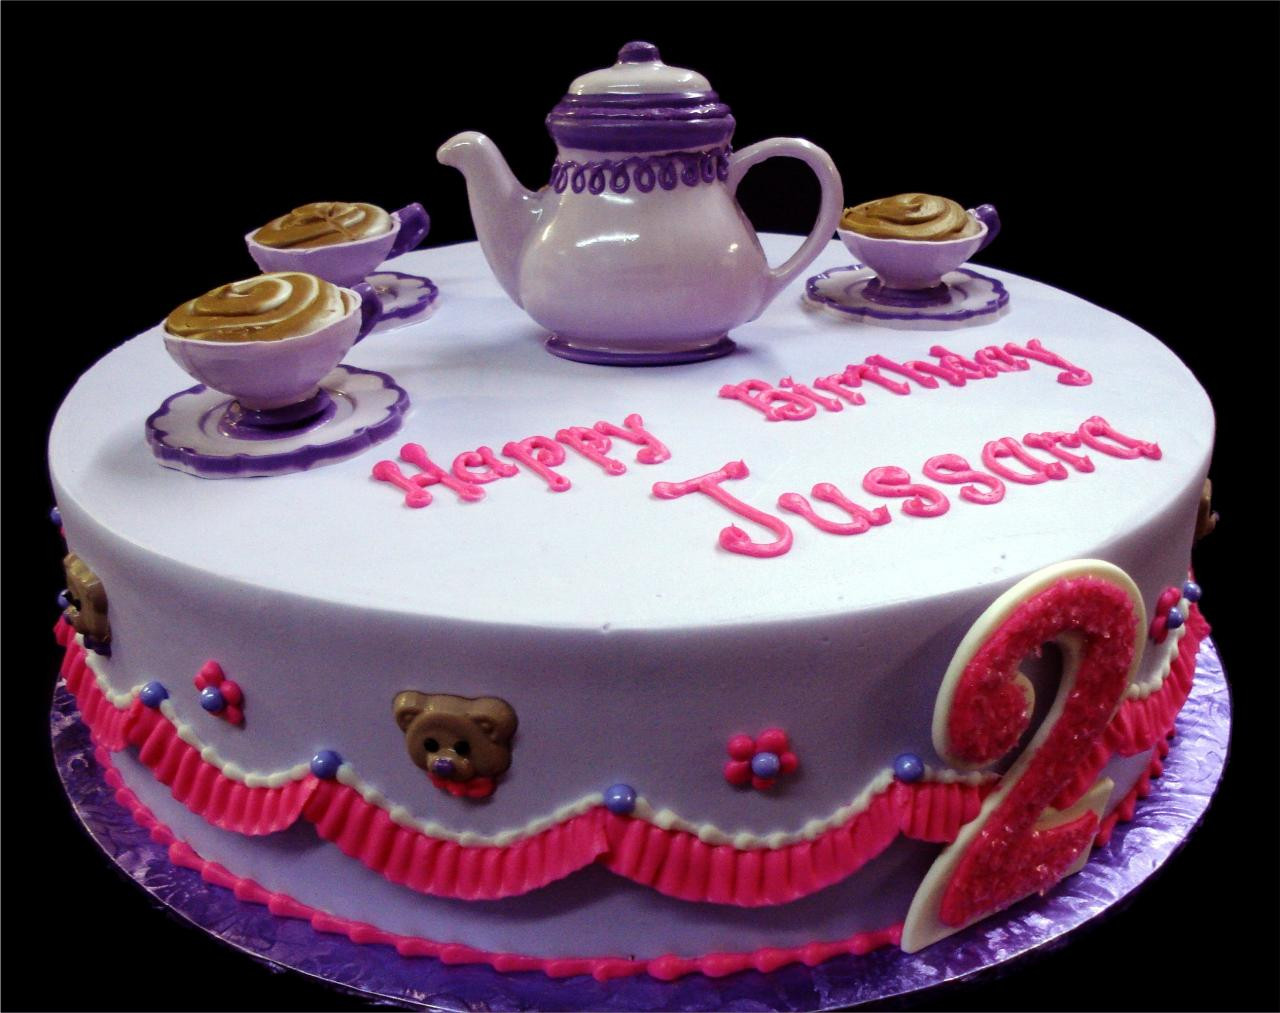 Best ideas about Birthday Party Cake . Save or Pin Birthday Cakes Now.